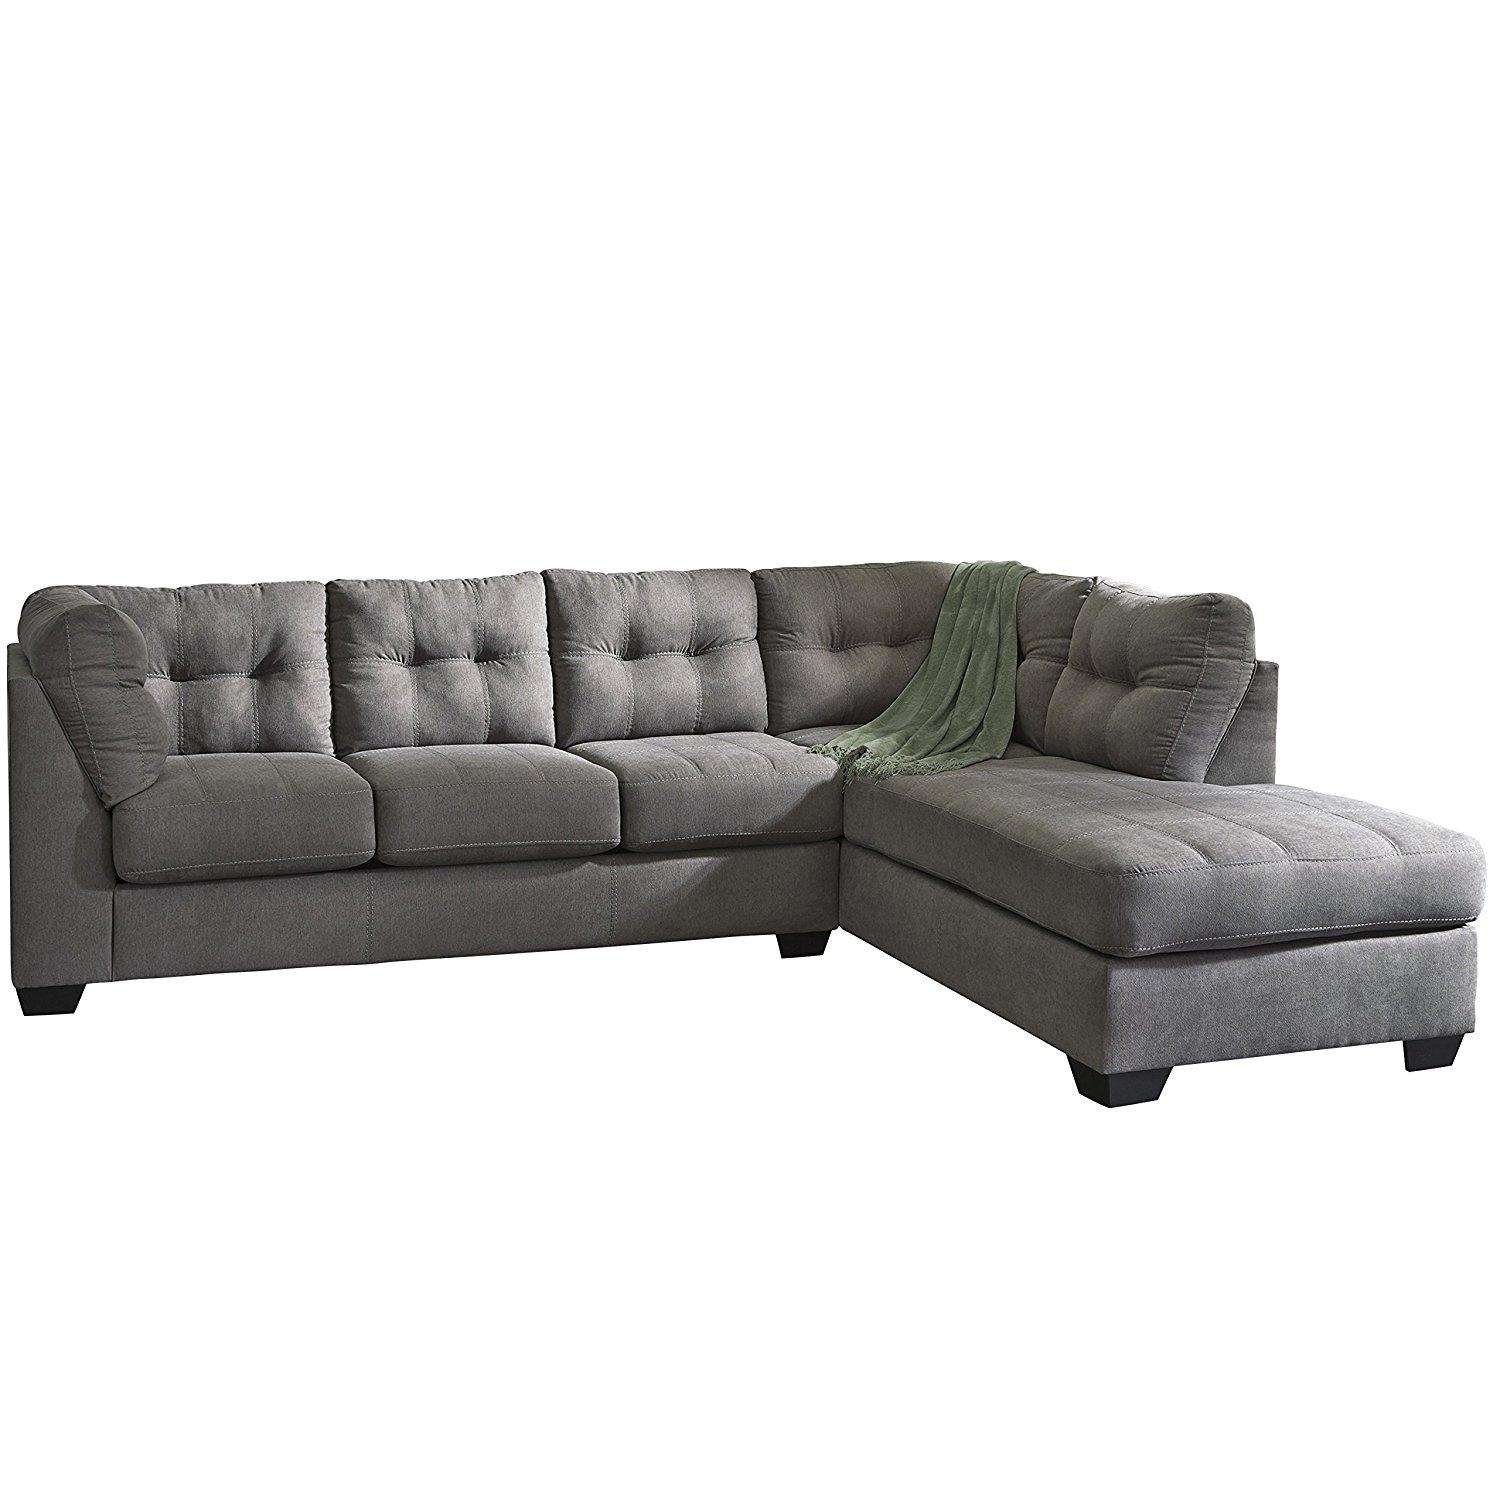 Sofas : Magnificent 2 Piece Sectional Sofa Sectional Couch With Regarding Small 2 Piece Sectional Sofas (View 22 of 23)